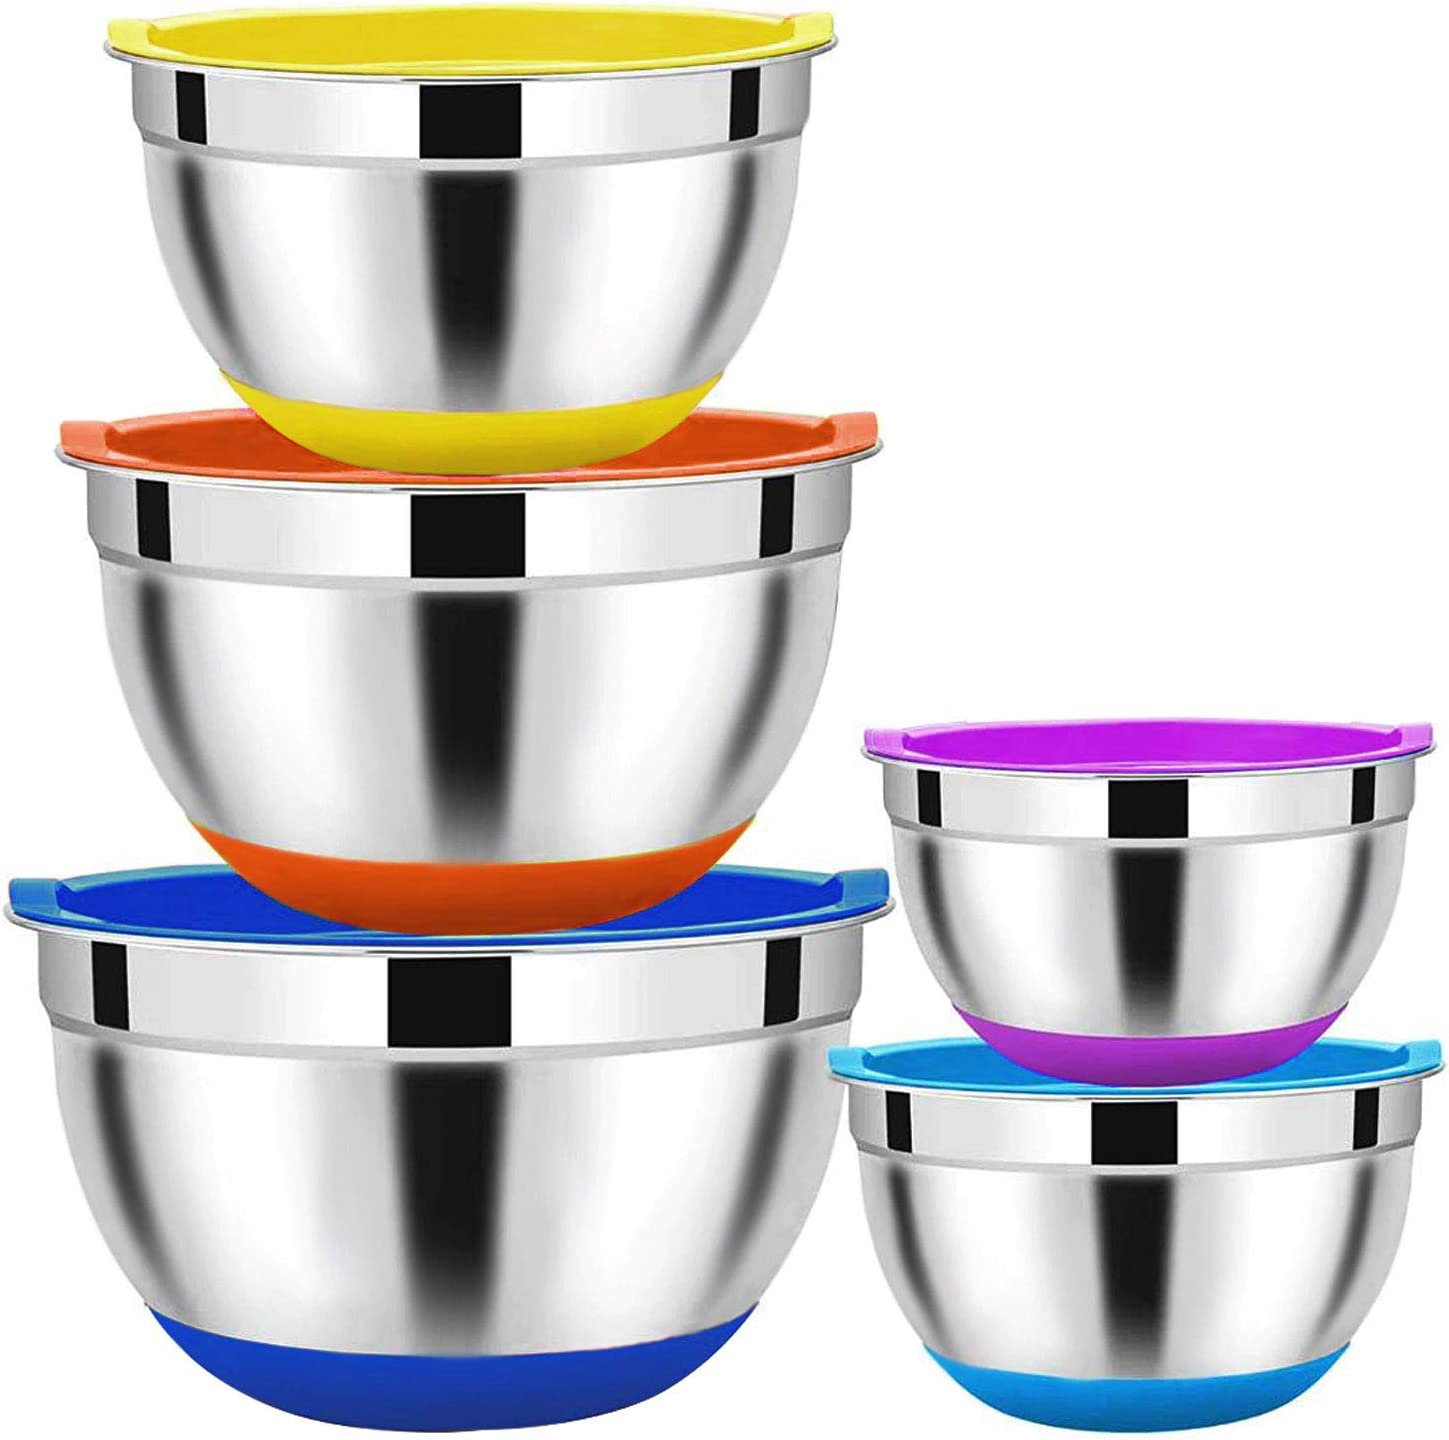 Newthinking Mixing Bowl with Lid Set of 5, Stainless Steel Nesting Mixing Bowl Set, Non-Slip Colorful Silicone Bottom Nesting Storage Bowls for Cooking, Mixing, Baking, Serving, Food Storage